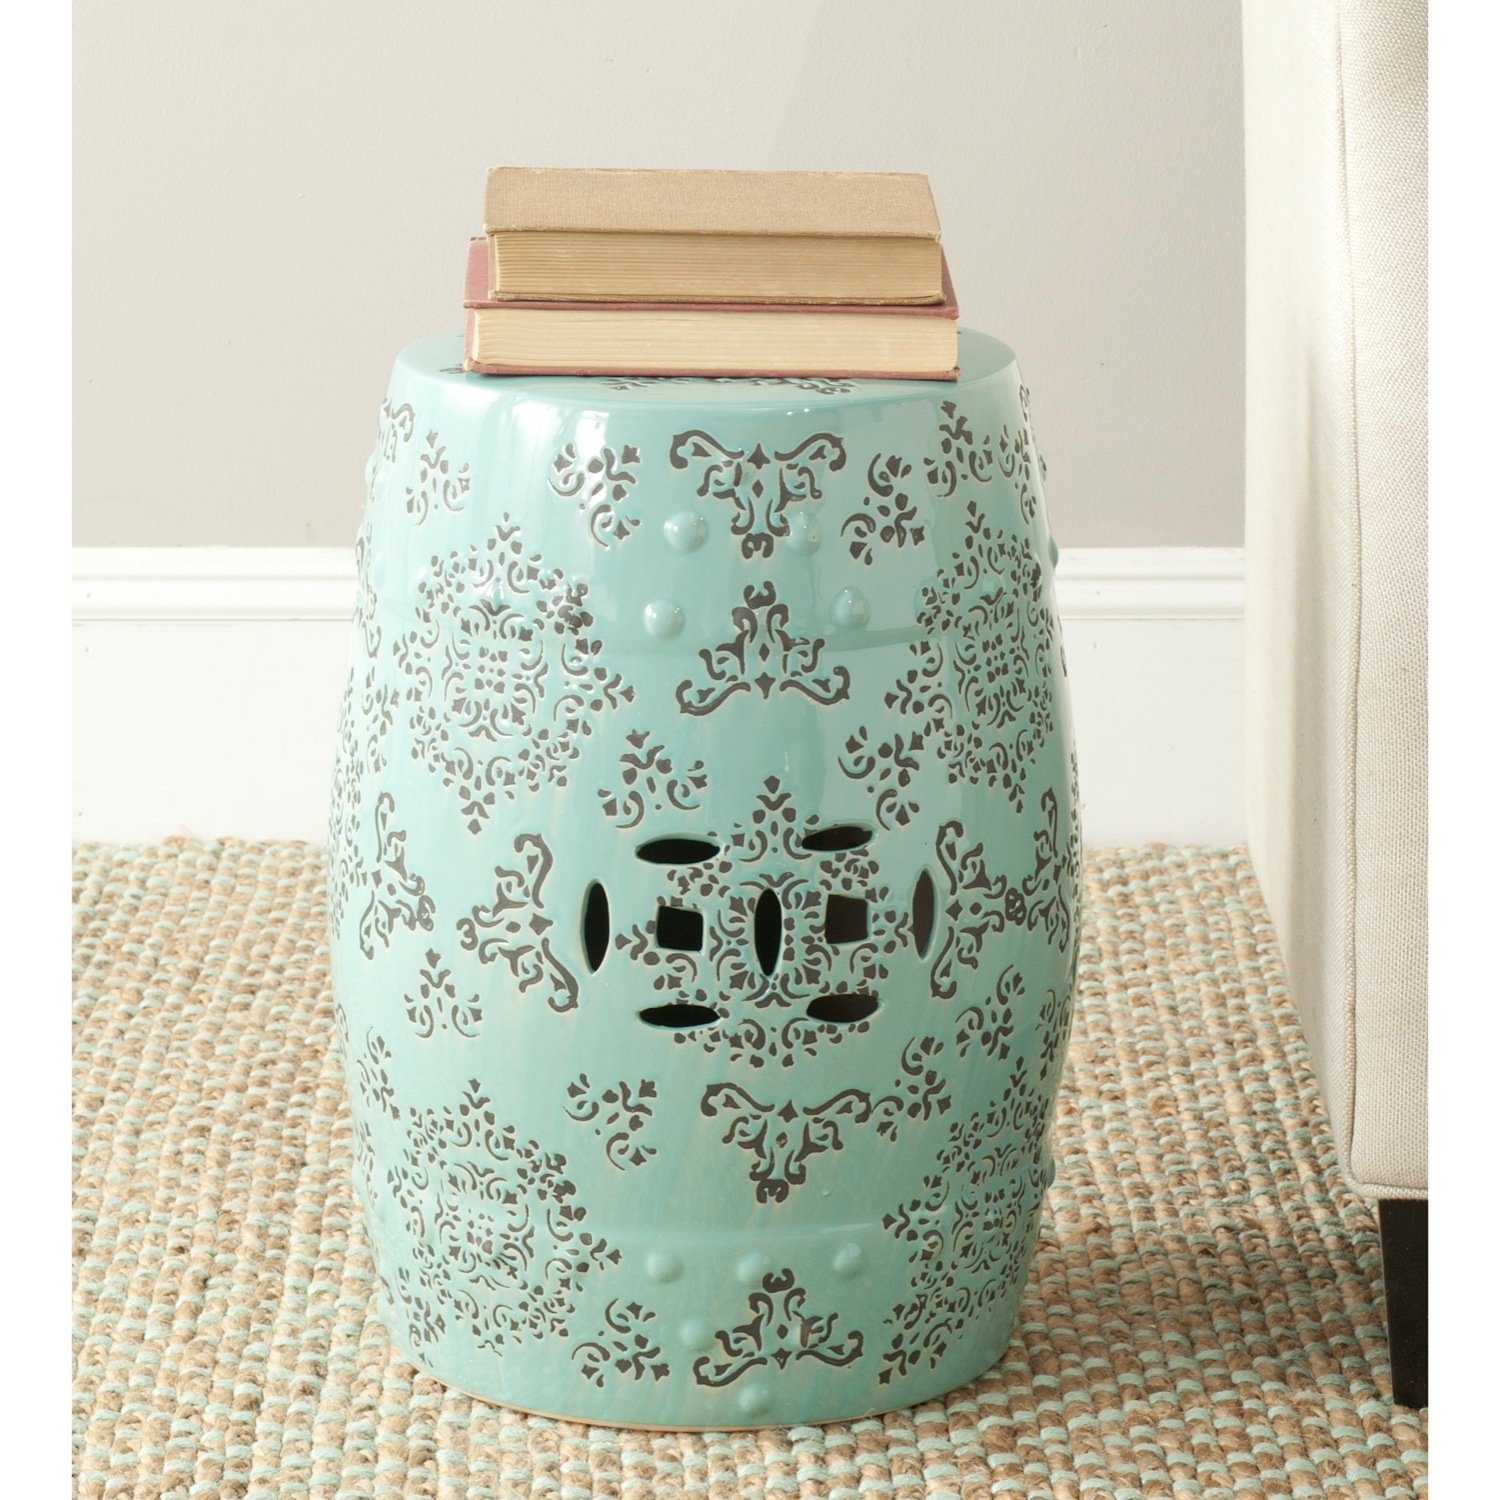 Safavieh Castle Gardens Collection Glazed Ceramic Robins Egg Blue Medallion Garden Stool